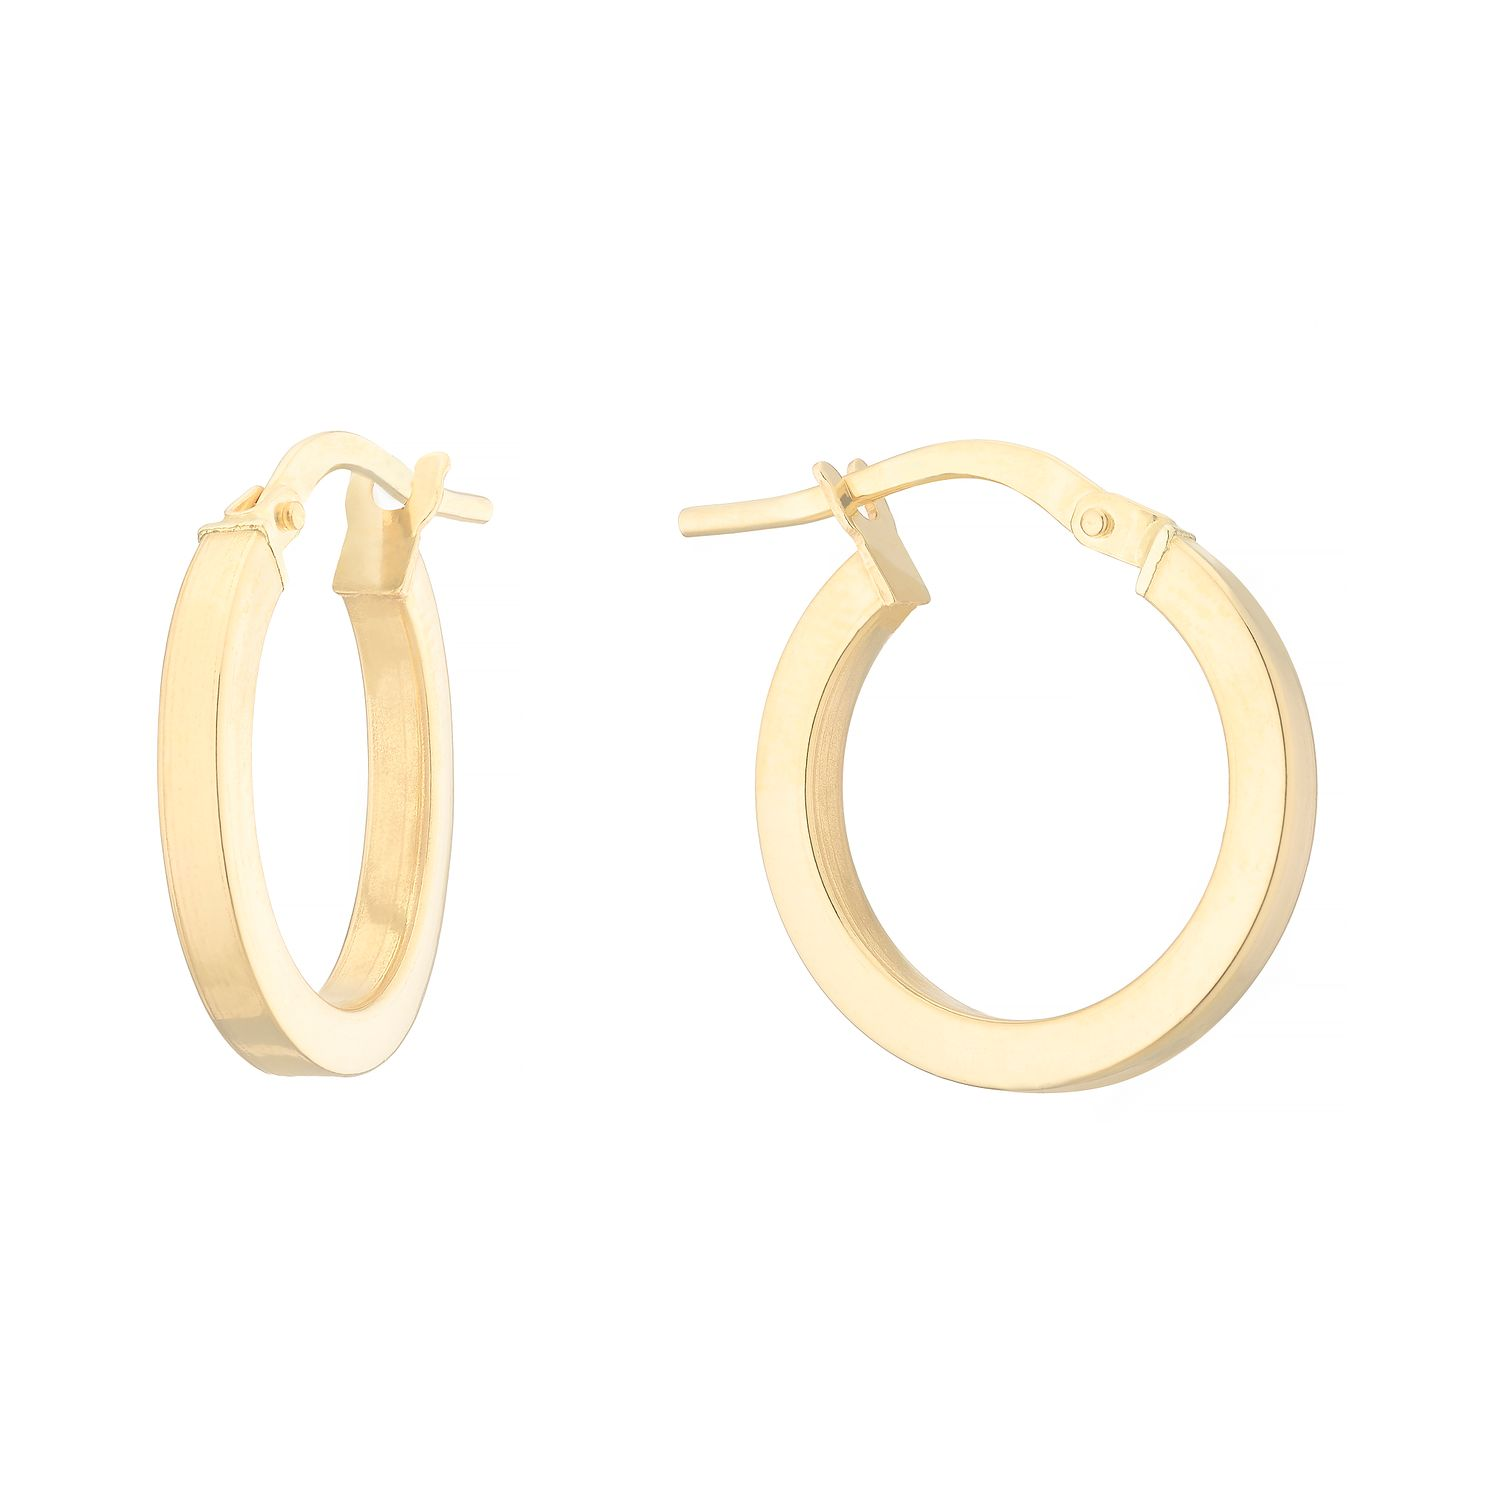 18ct Yellow Gold 13mm Square Tube Hoop Earrings - Product number 4681606